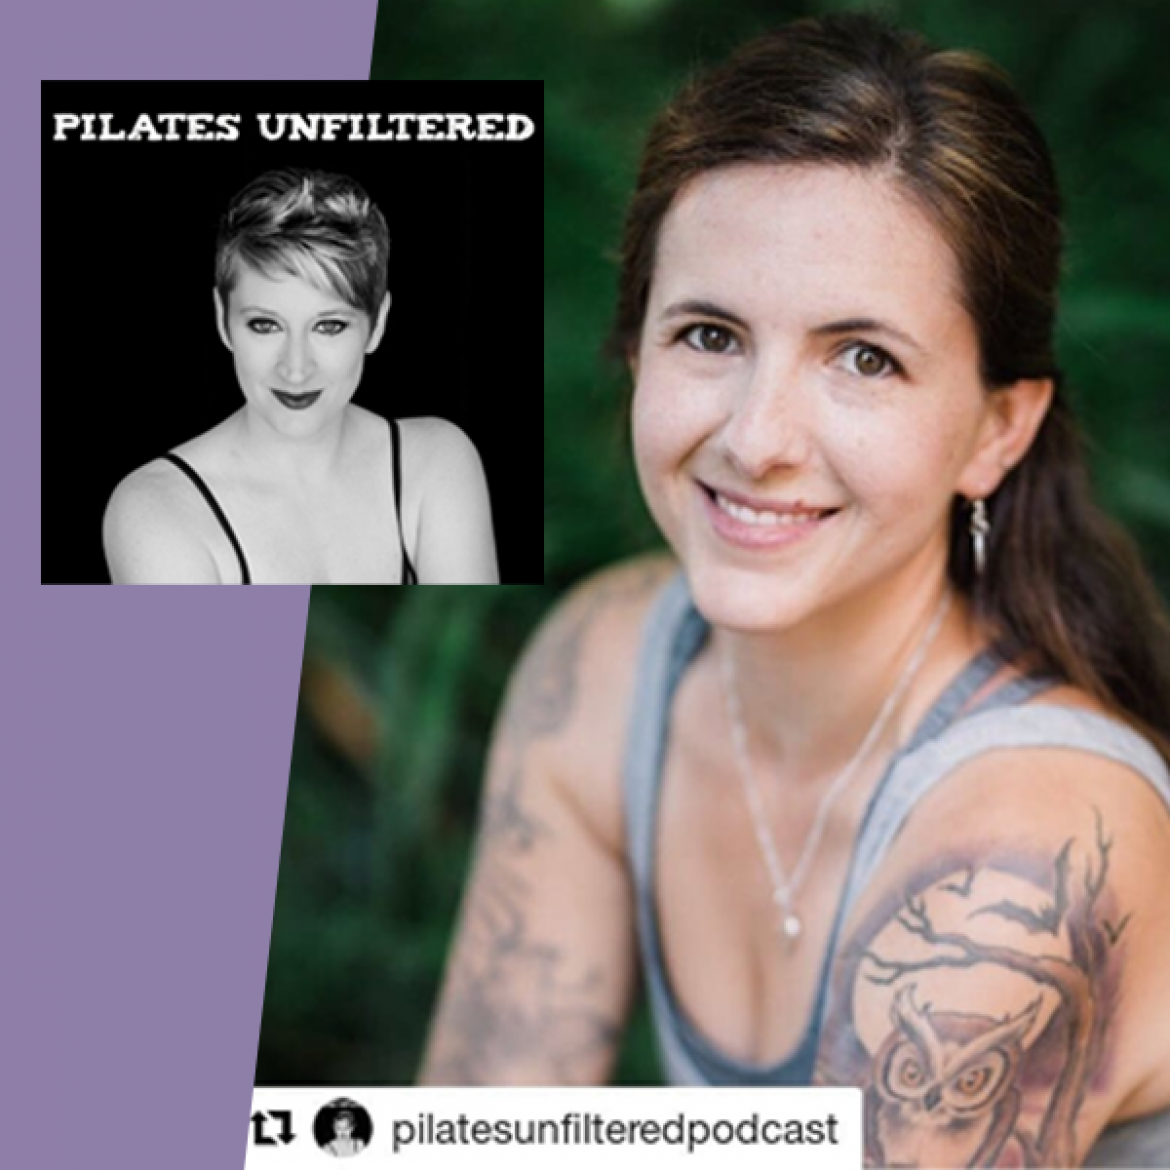 Pilates Unfiltered Podcast with Amy Hershey